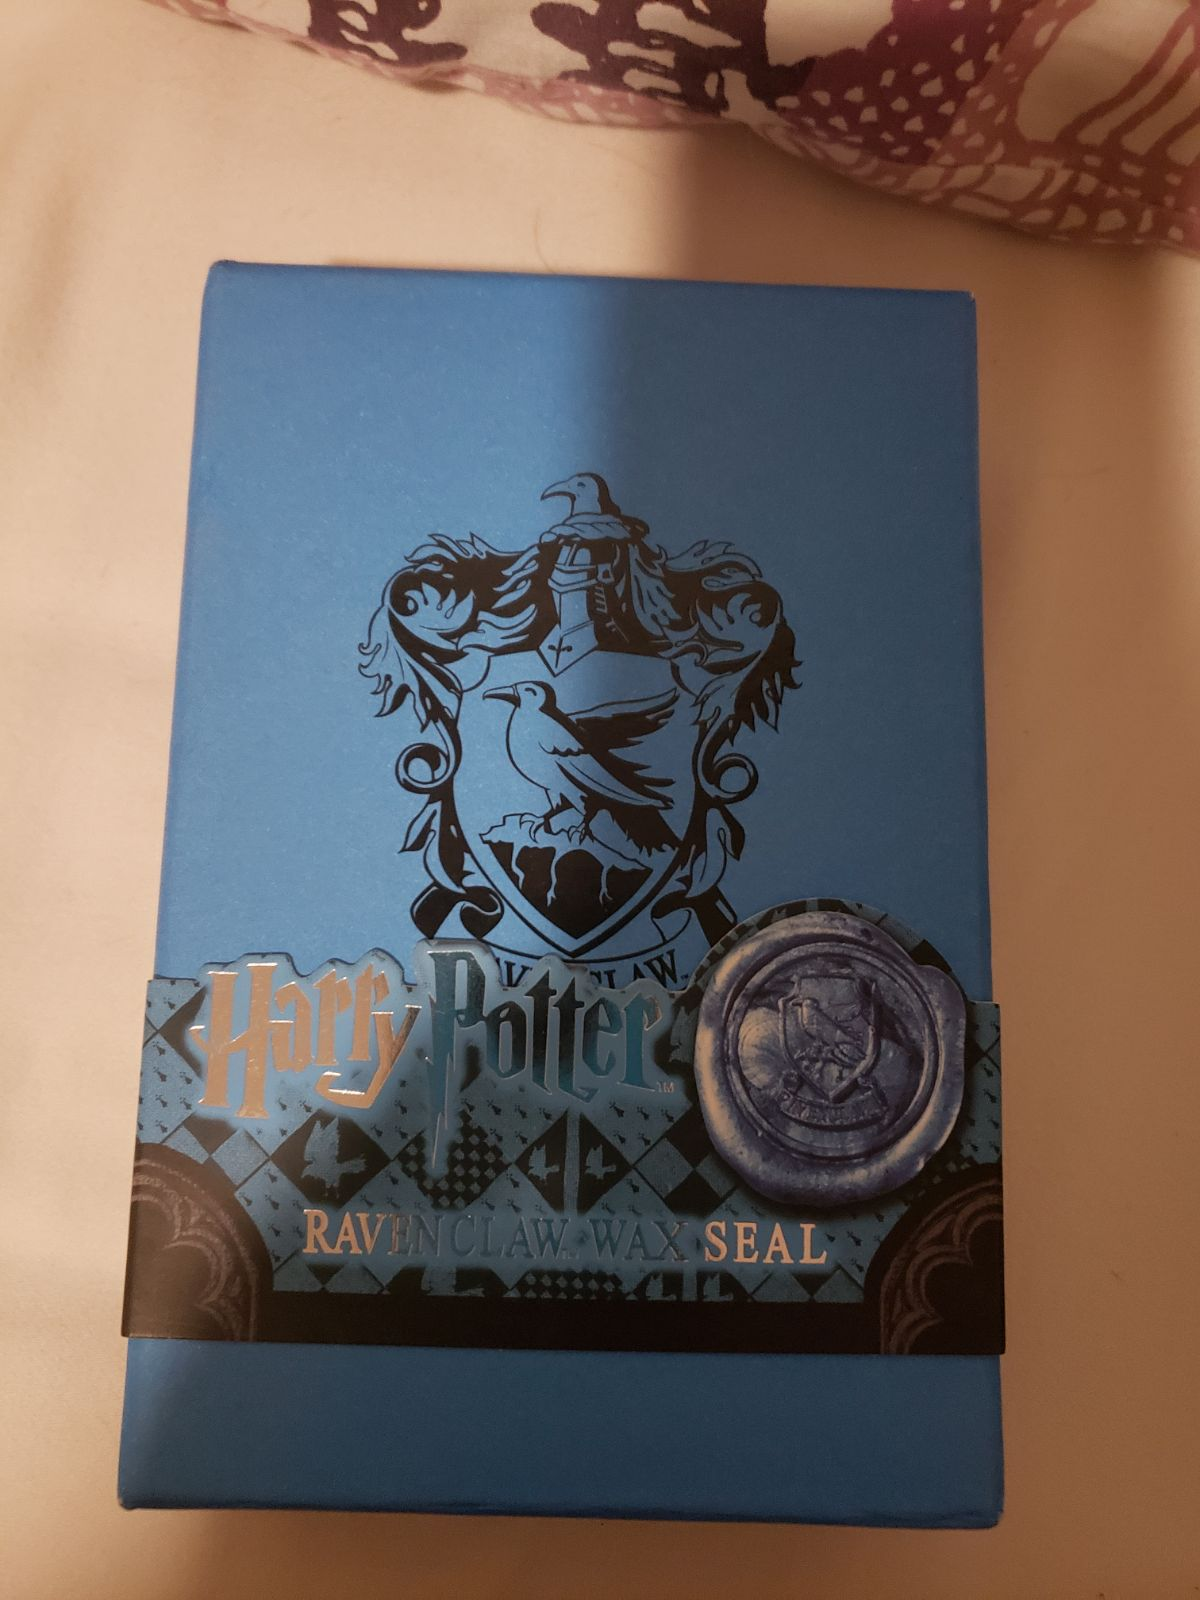 Harry potter wax seal ravenclaw